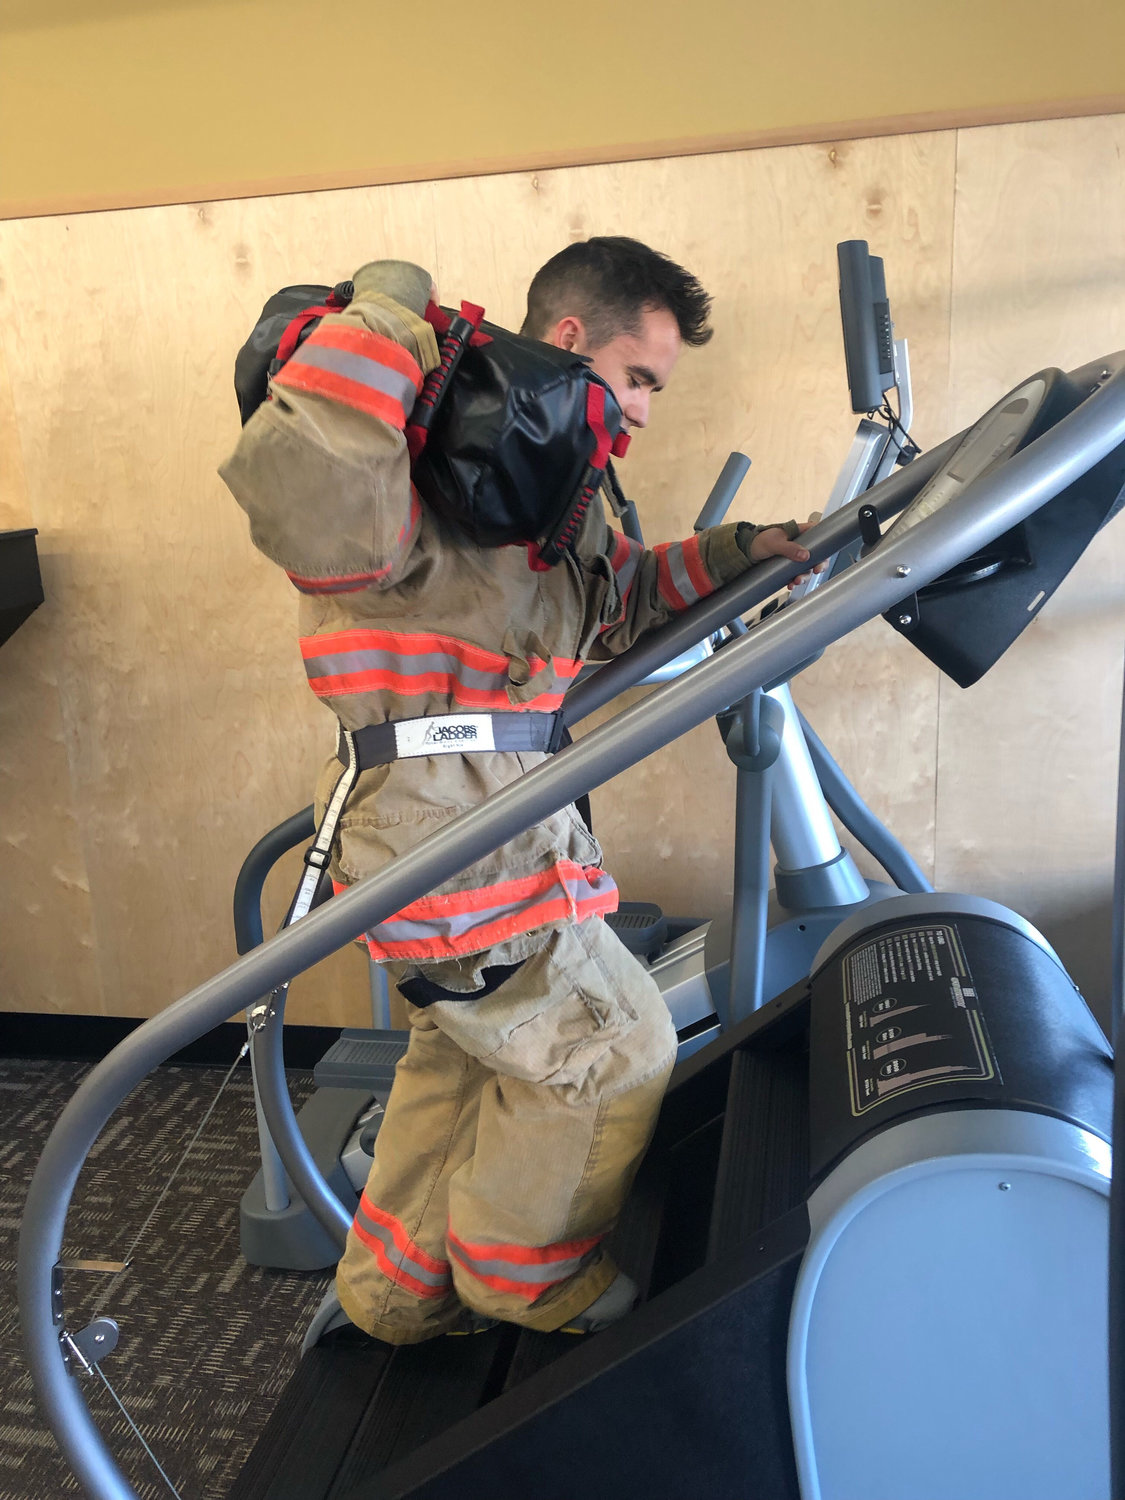 Anytime Fitness Blaine owner Mike Andes demonstrates the 110 Floor Stair Climb challenge.